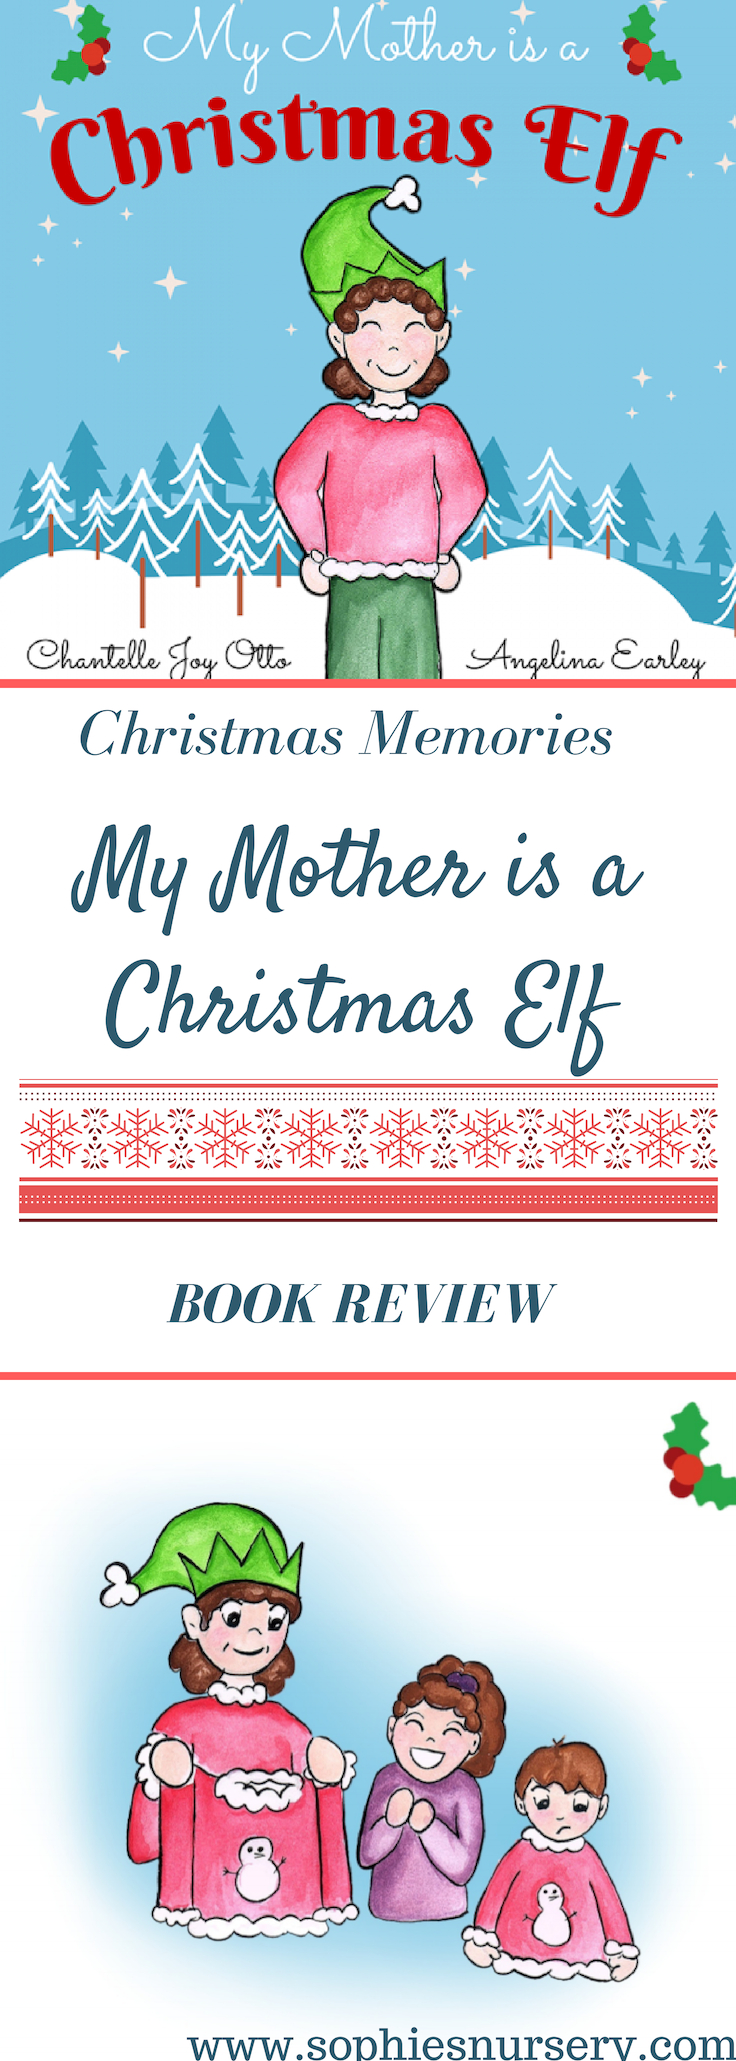 Looking for a new #Christmas book to add to your child's collection? My Mother is a Christmas Elf is a lovely heartwarming story about the way the author's mum made every Christmas magical.  #Christmasbooks #Christmasgifts #kidsbooks #Christmasgiftideas